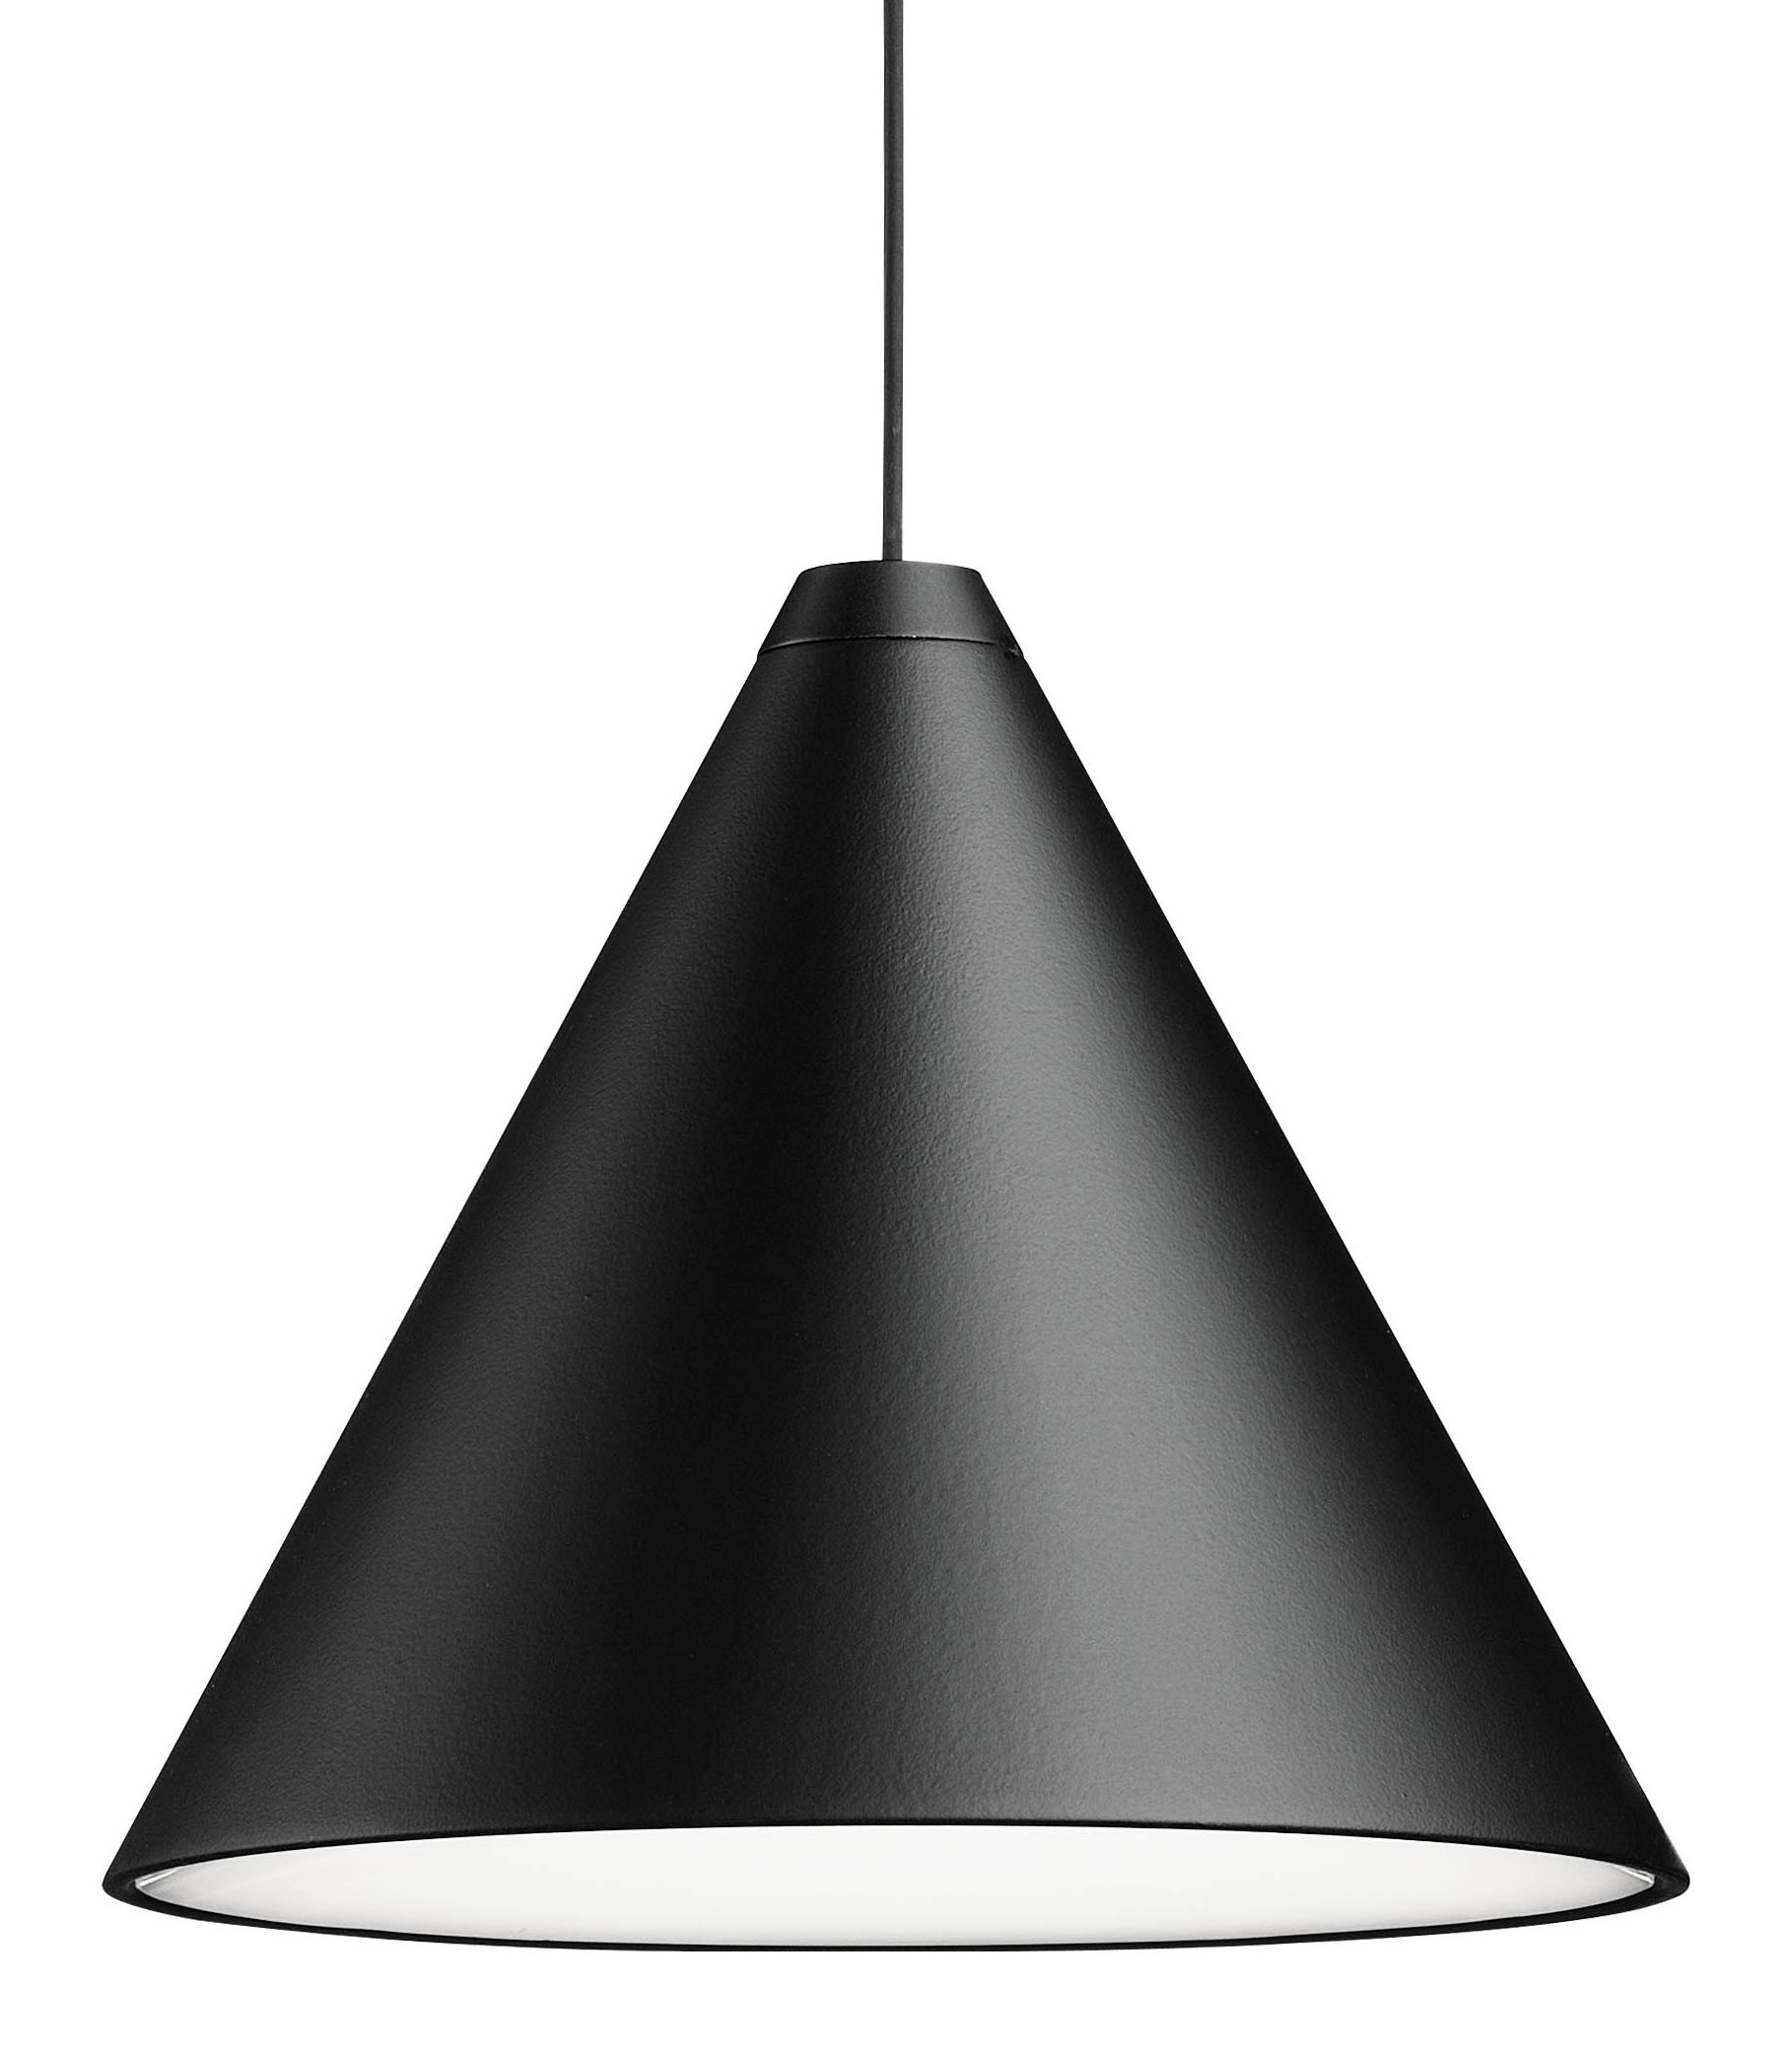 Lighting - Pendant Lighting - String Light Cone Pendant by Flos - Cone / Black - Fabric, Painted aluminium, Polycarbonate